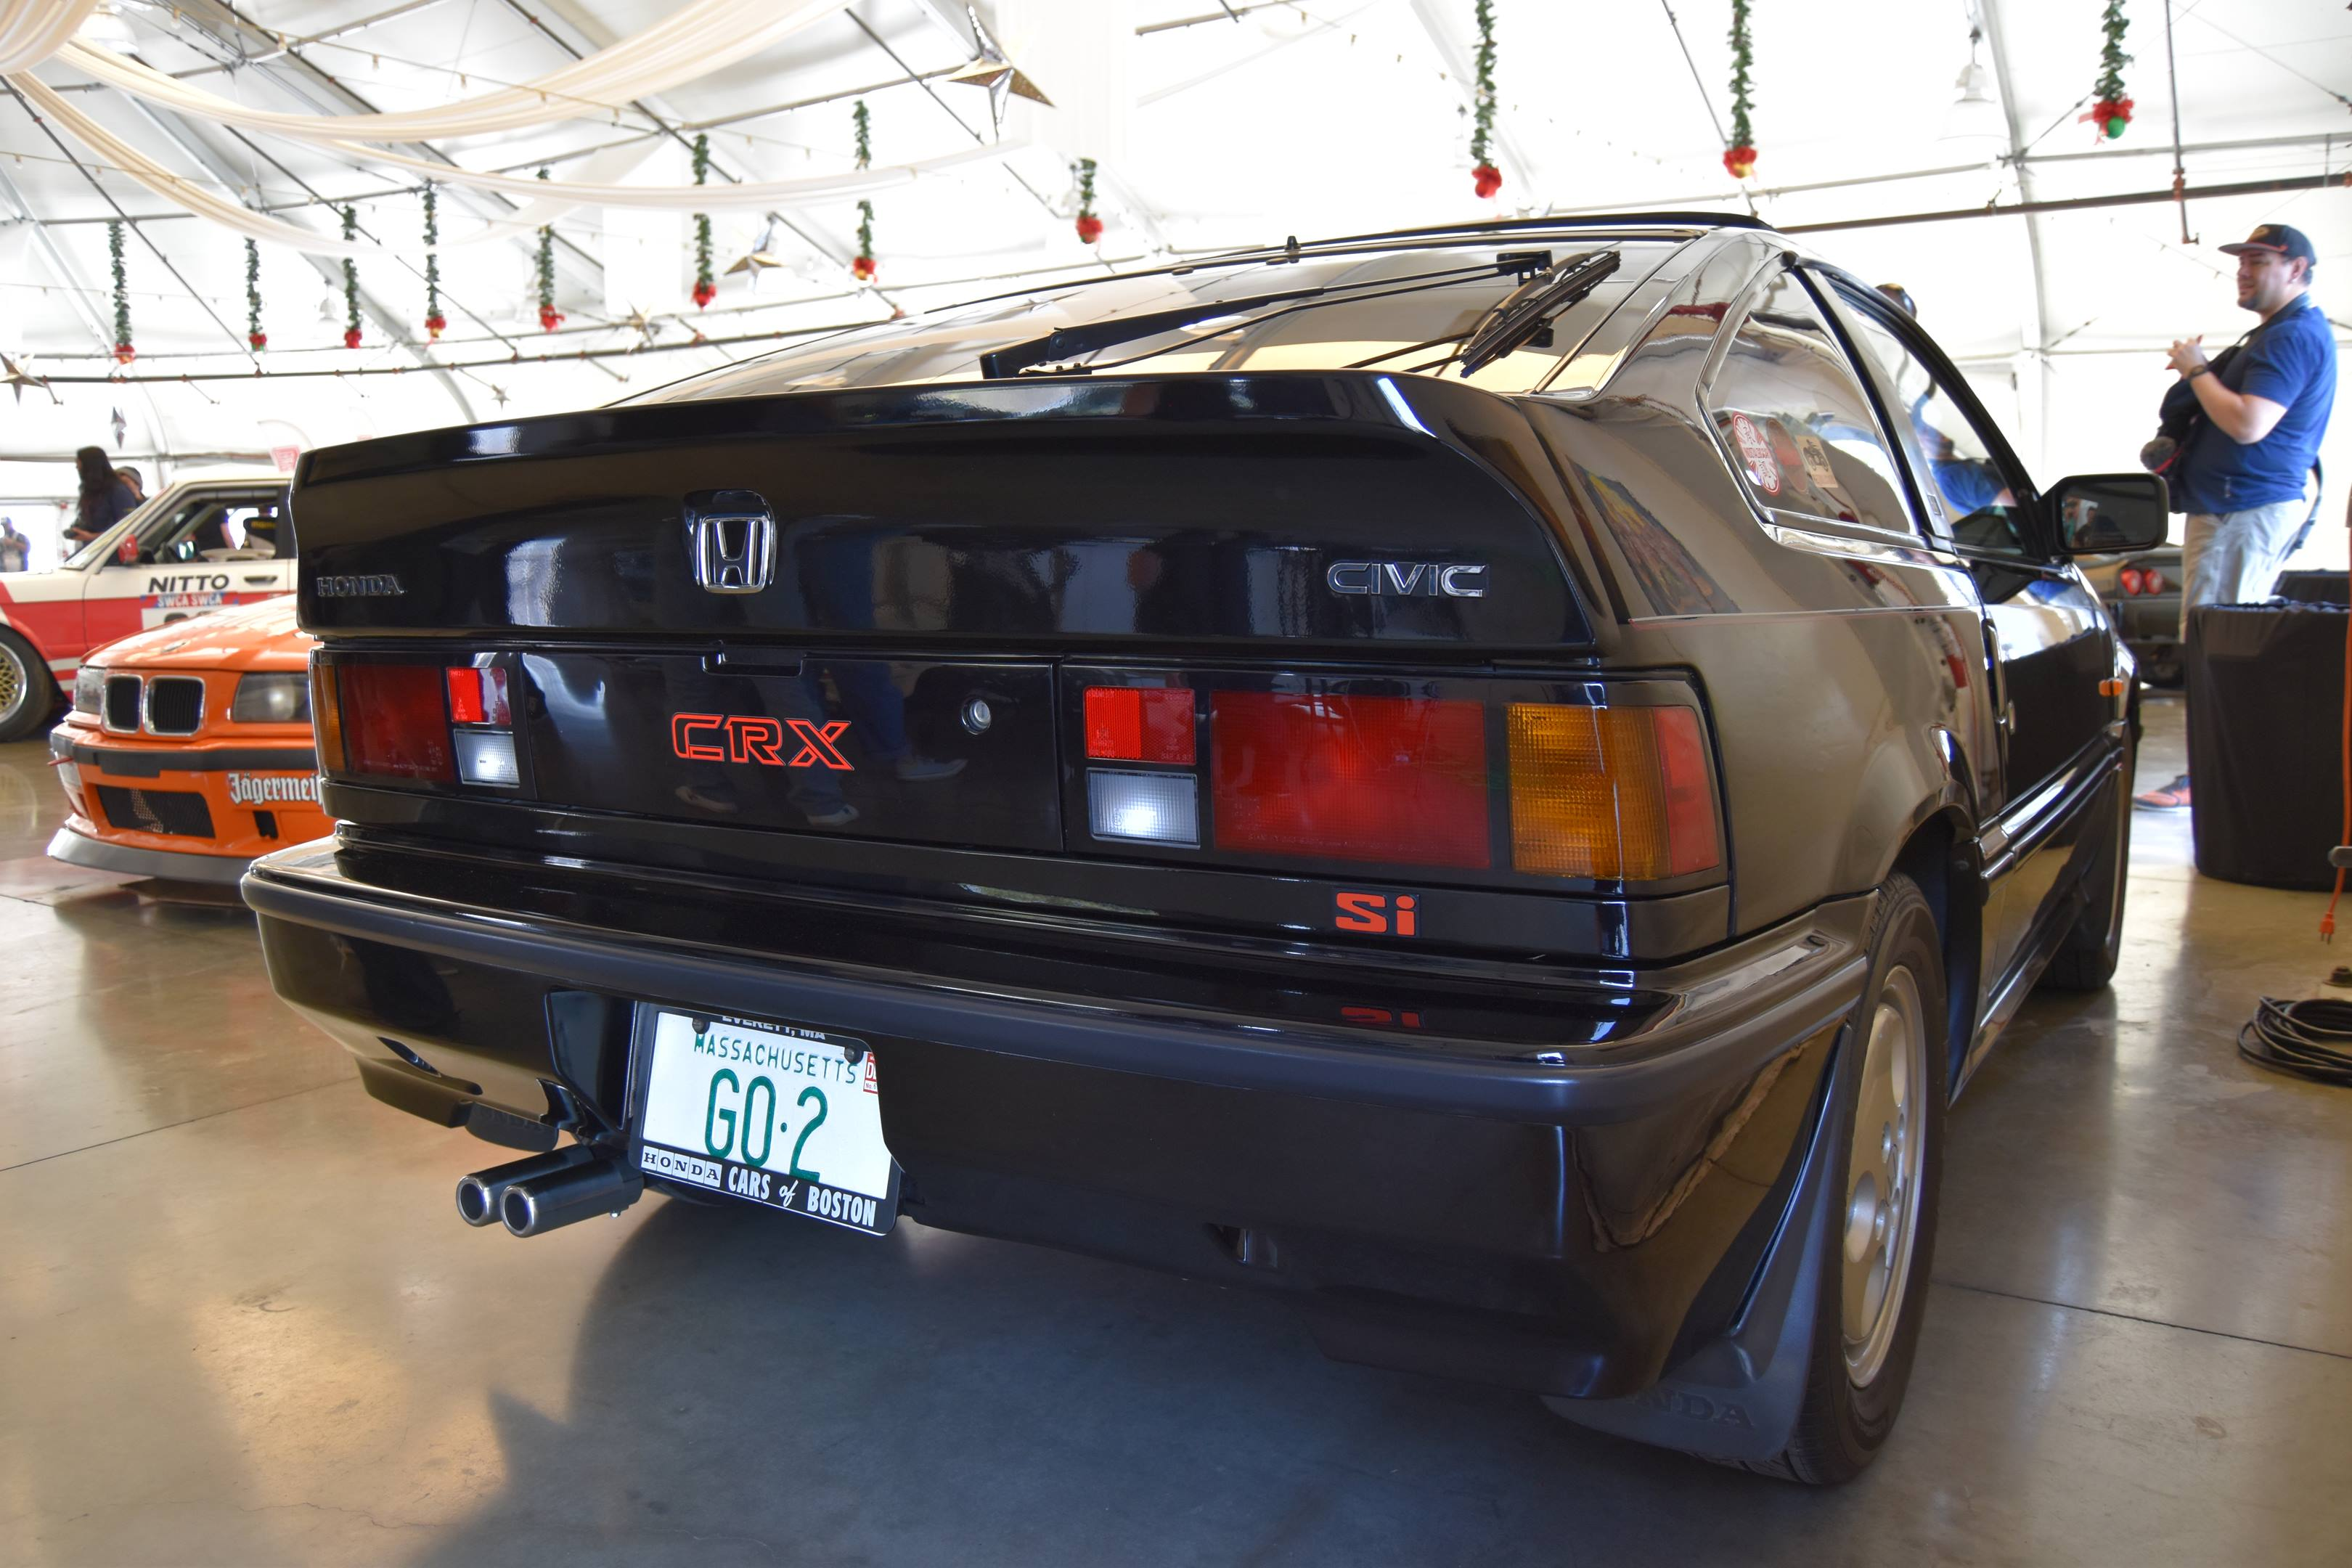 1987 Honda Civic CRX Si rear 3/4